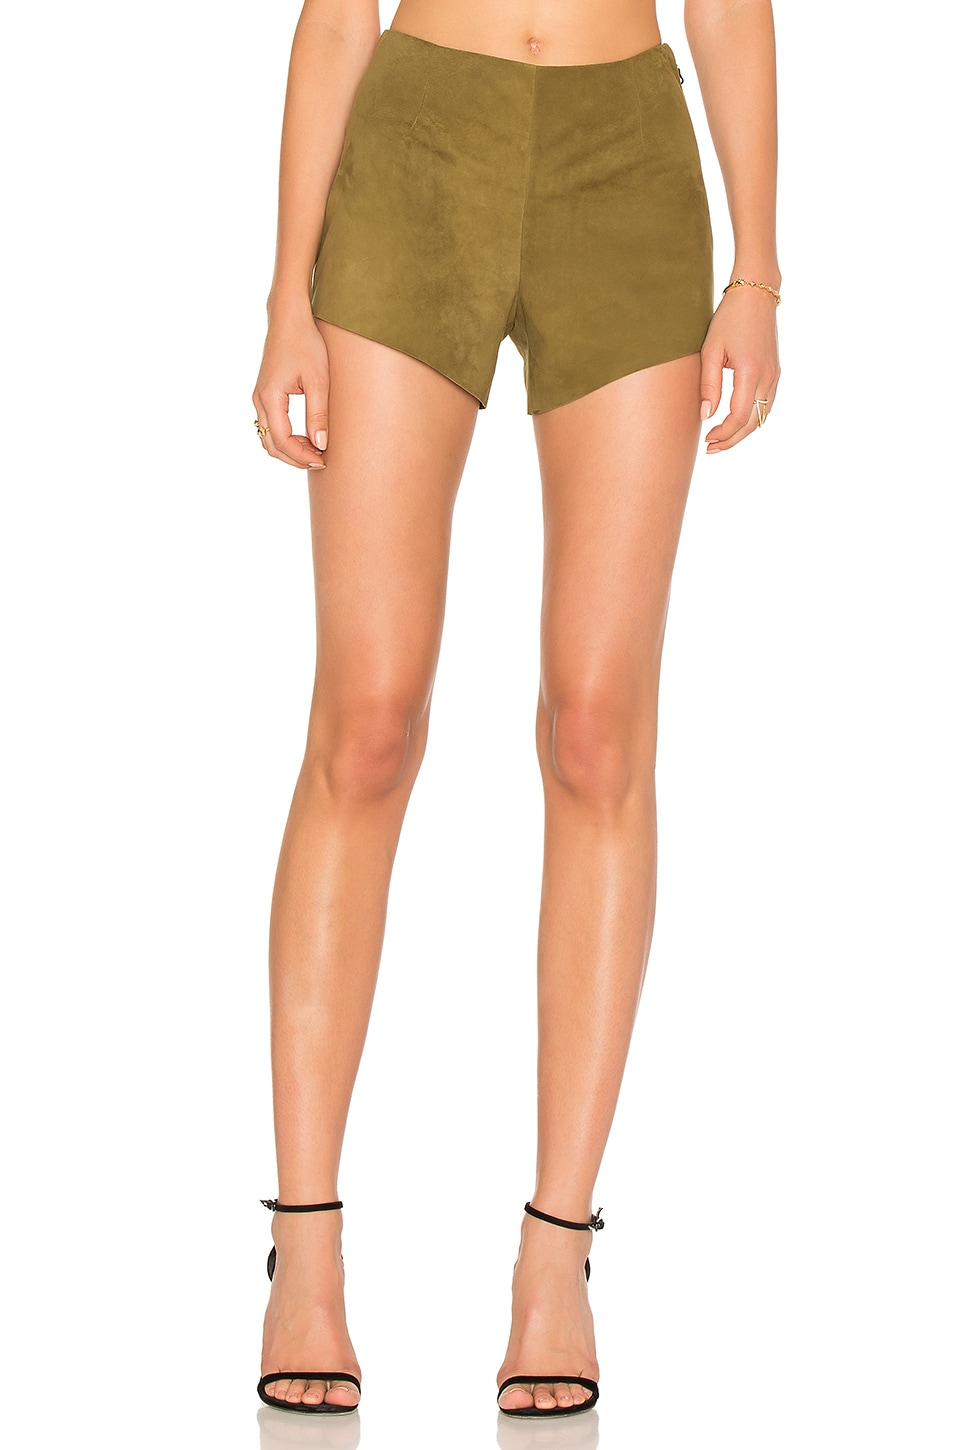 AYNI Quarzo Suede Short in Olive Green